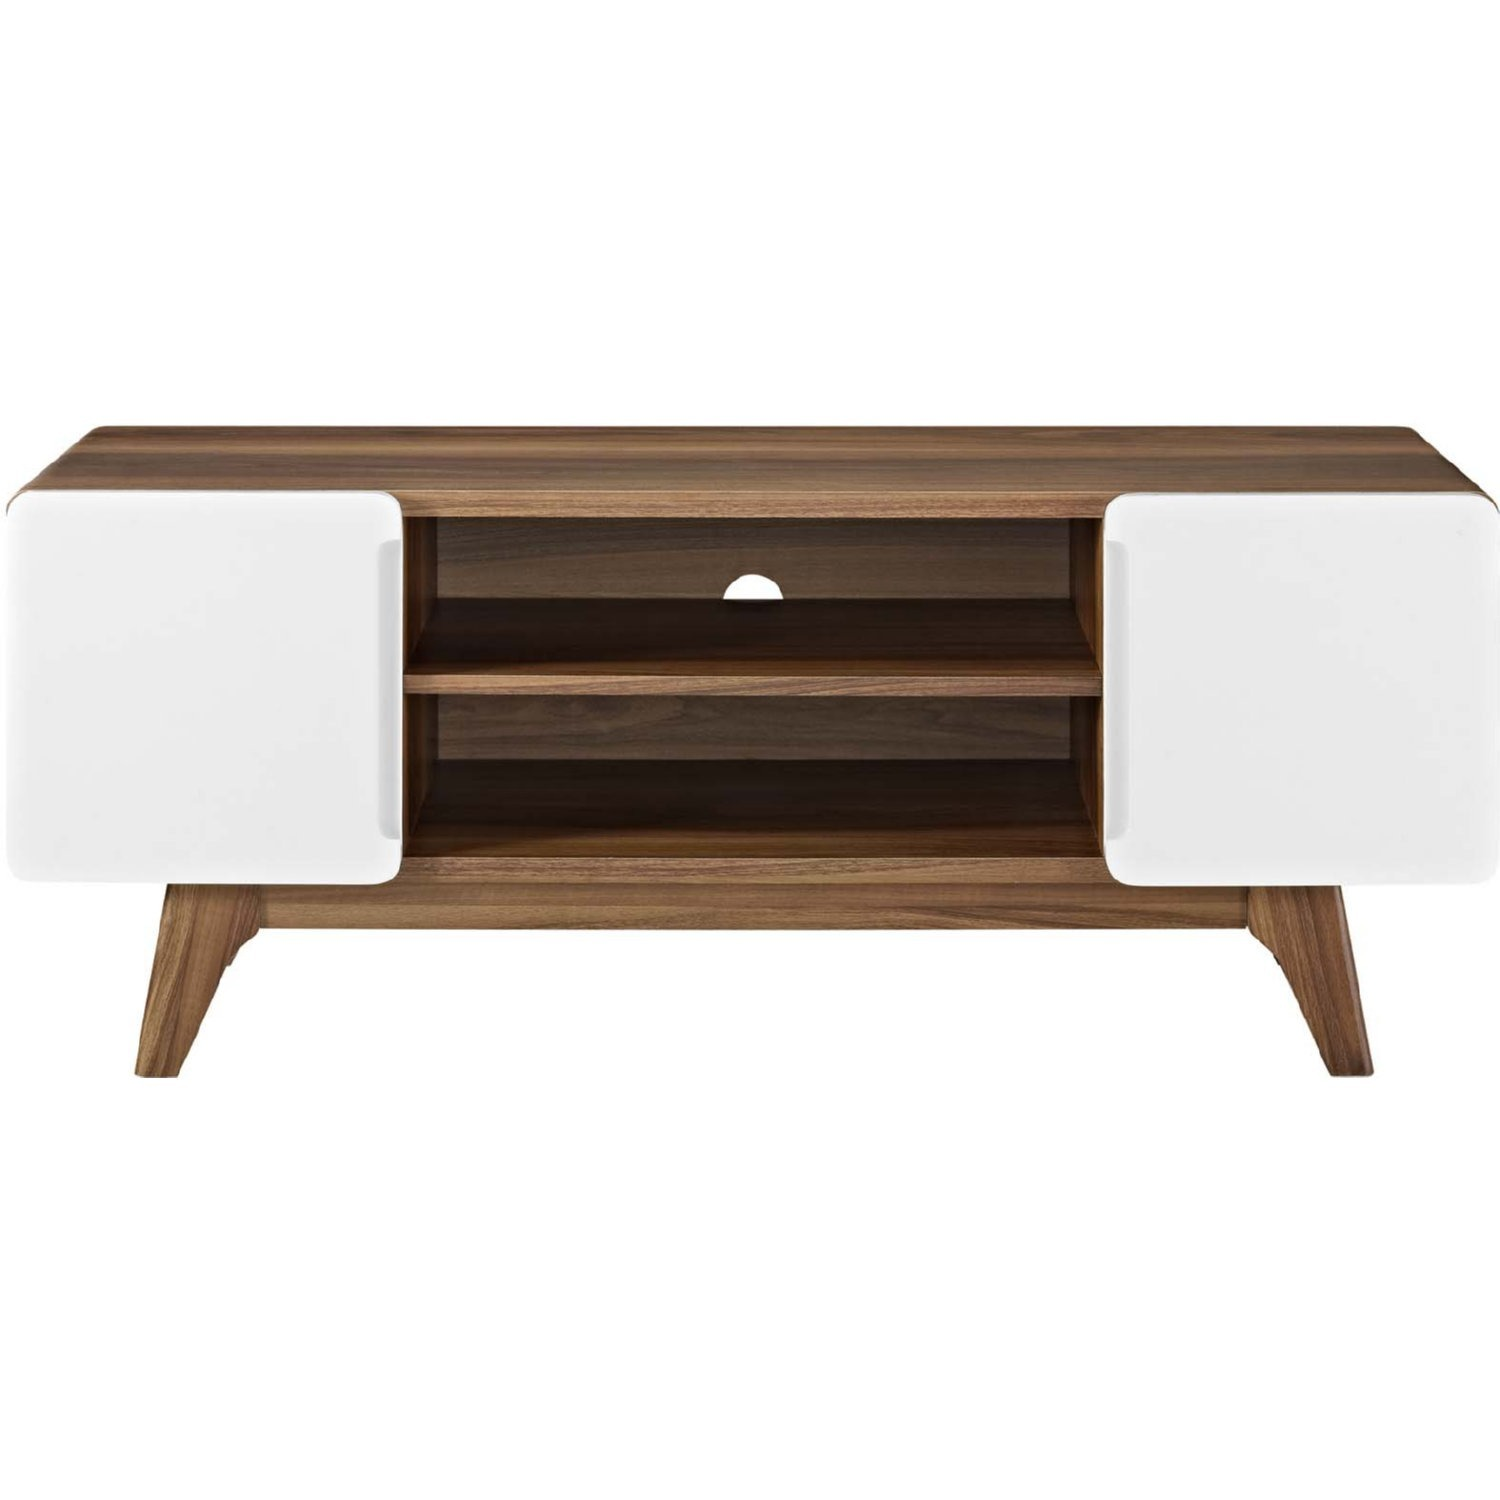 """47"""" TV Stand In Walnut & White Finish - image-1"""